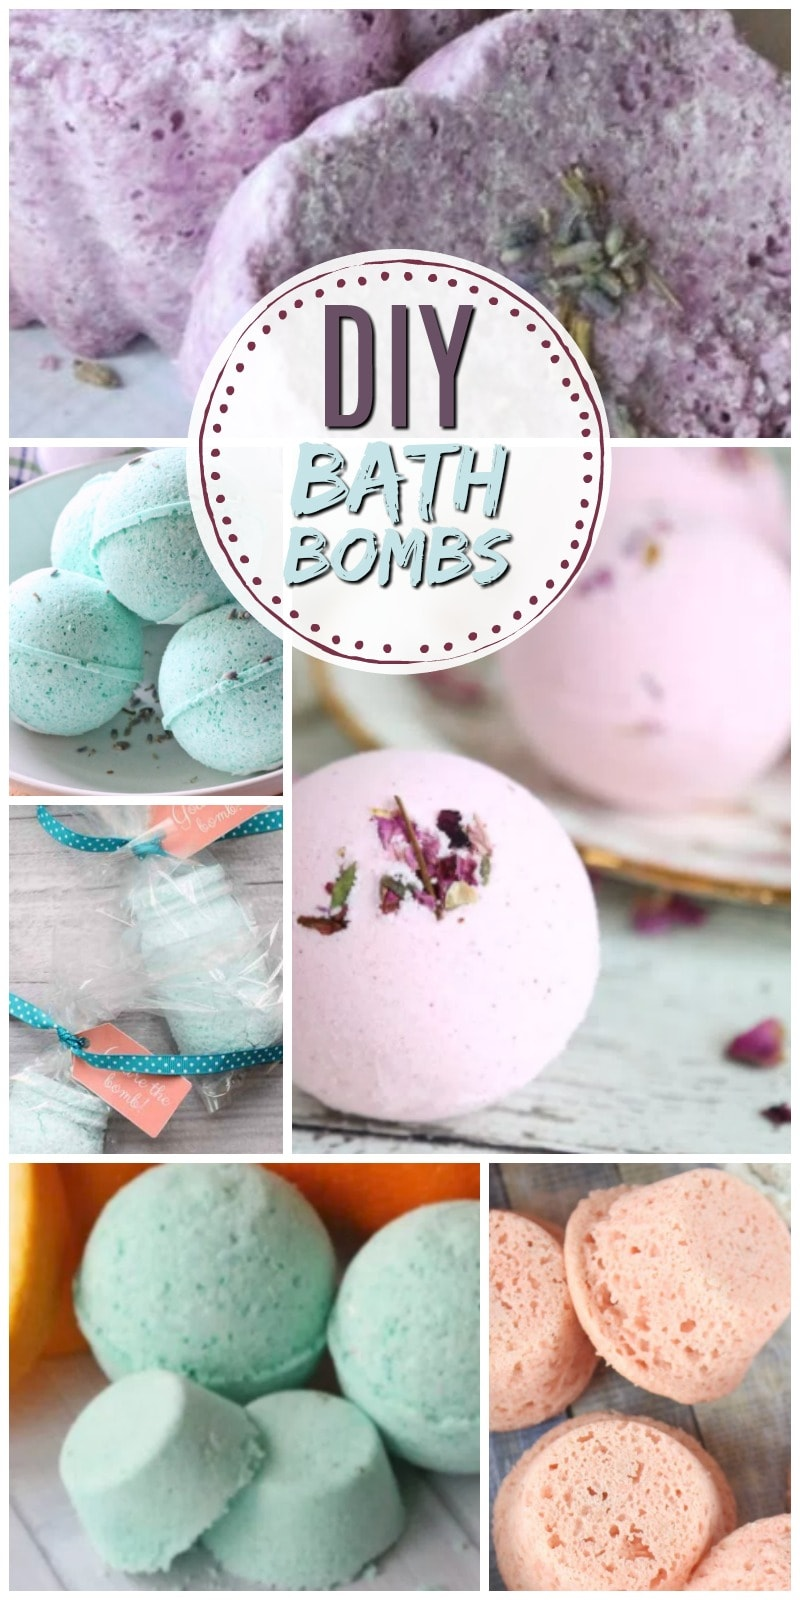 Learn how to make bath bombs at home - they're even better than Lush bath bombs